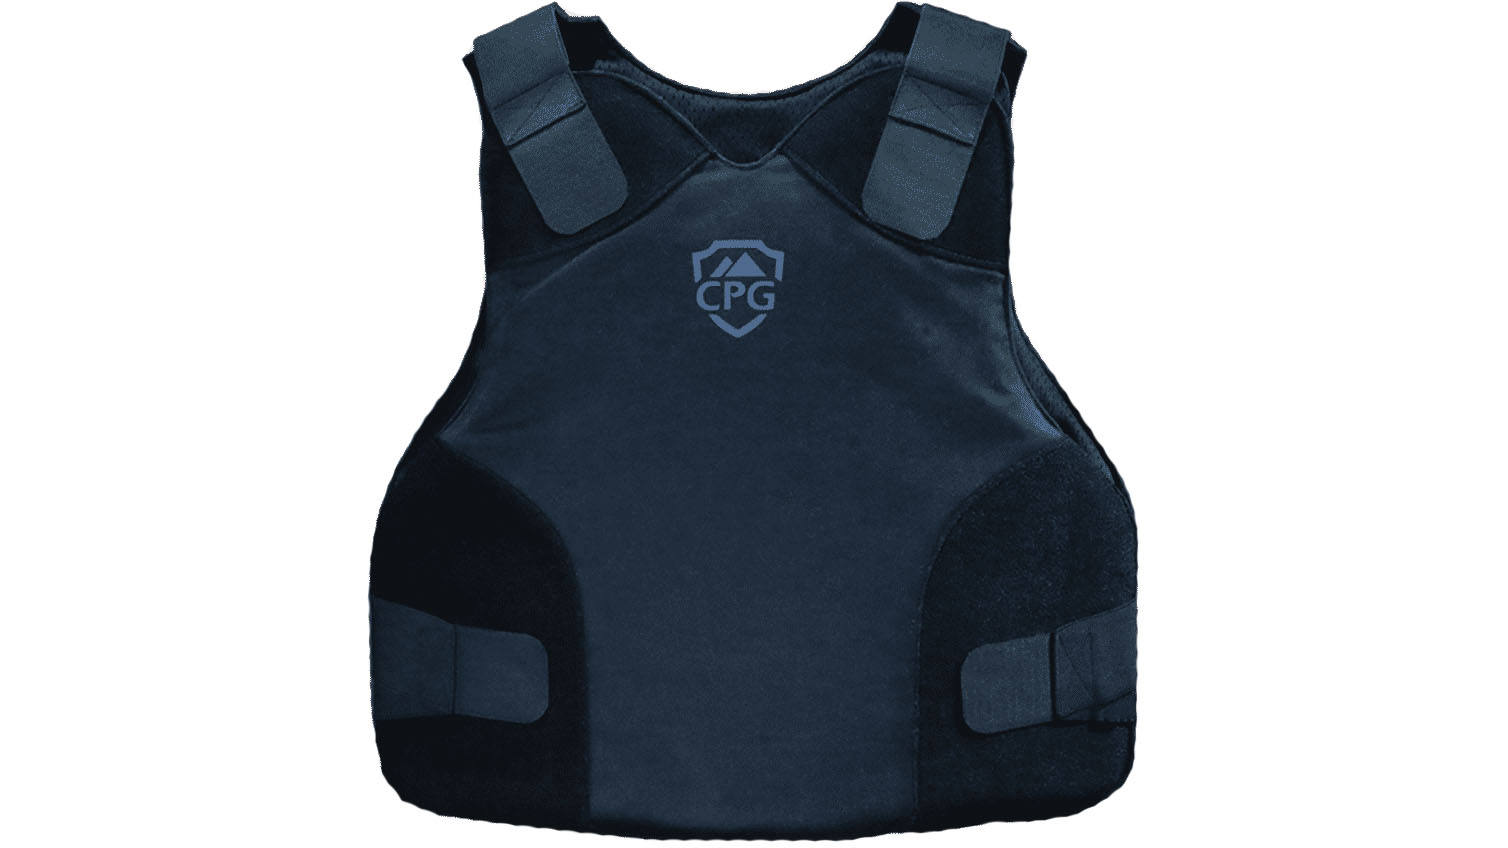 As of Feb. 20, only police and other authorized workers will be allowed to wear body armour.